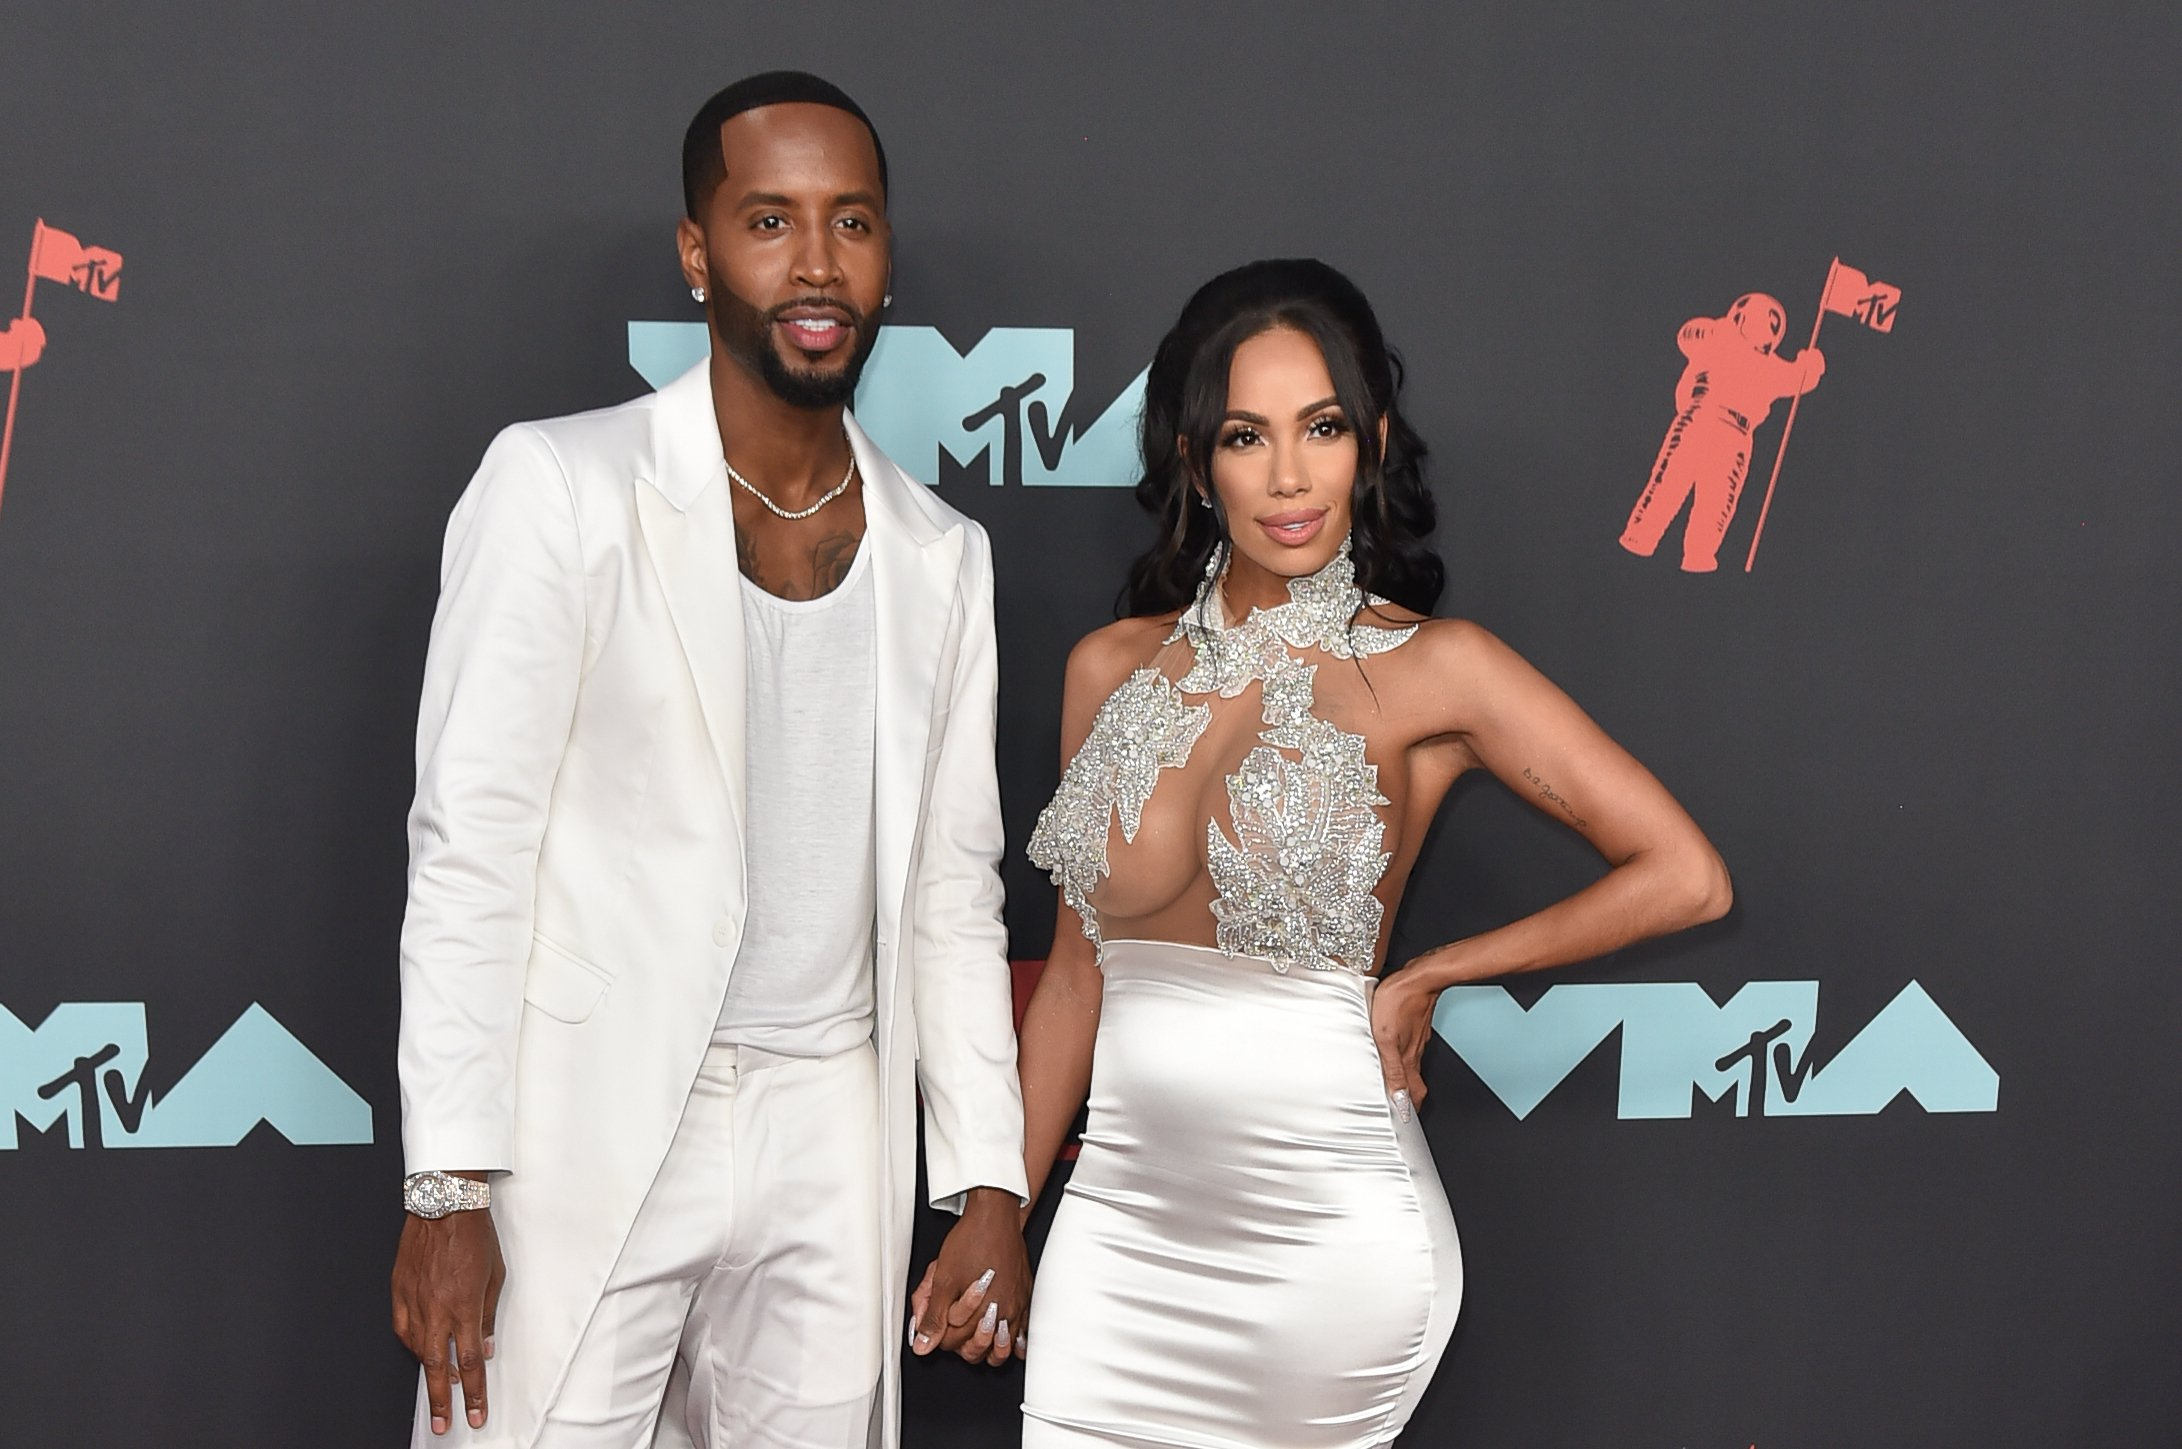 Safaree Samuels and Erica Mena at the 2019 MTV Video Music Awards at Prudential Center on August 26, 2019 in Newark, New Jersey.| Source: Getty Images